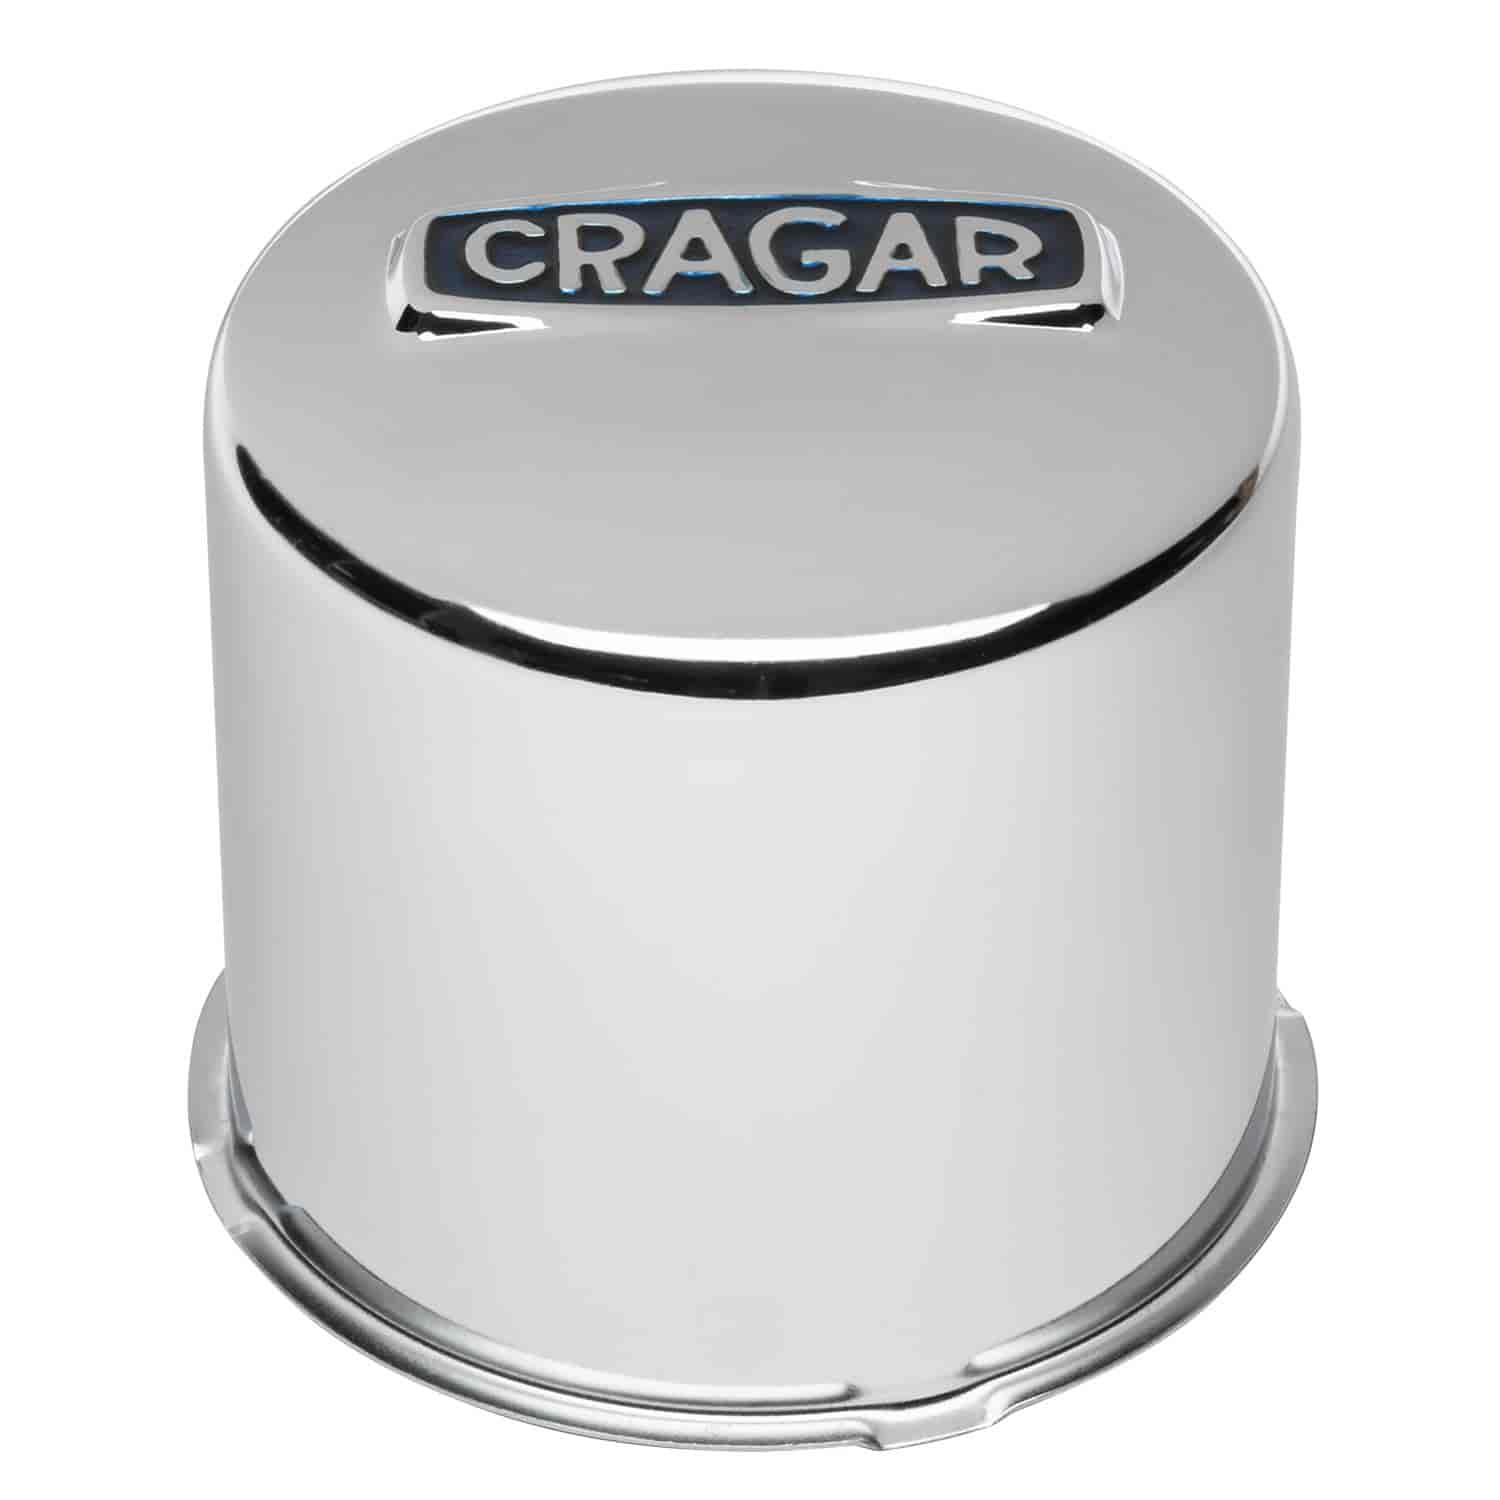 Cragar 29277-1 - Cragar Wheel Center Caps